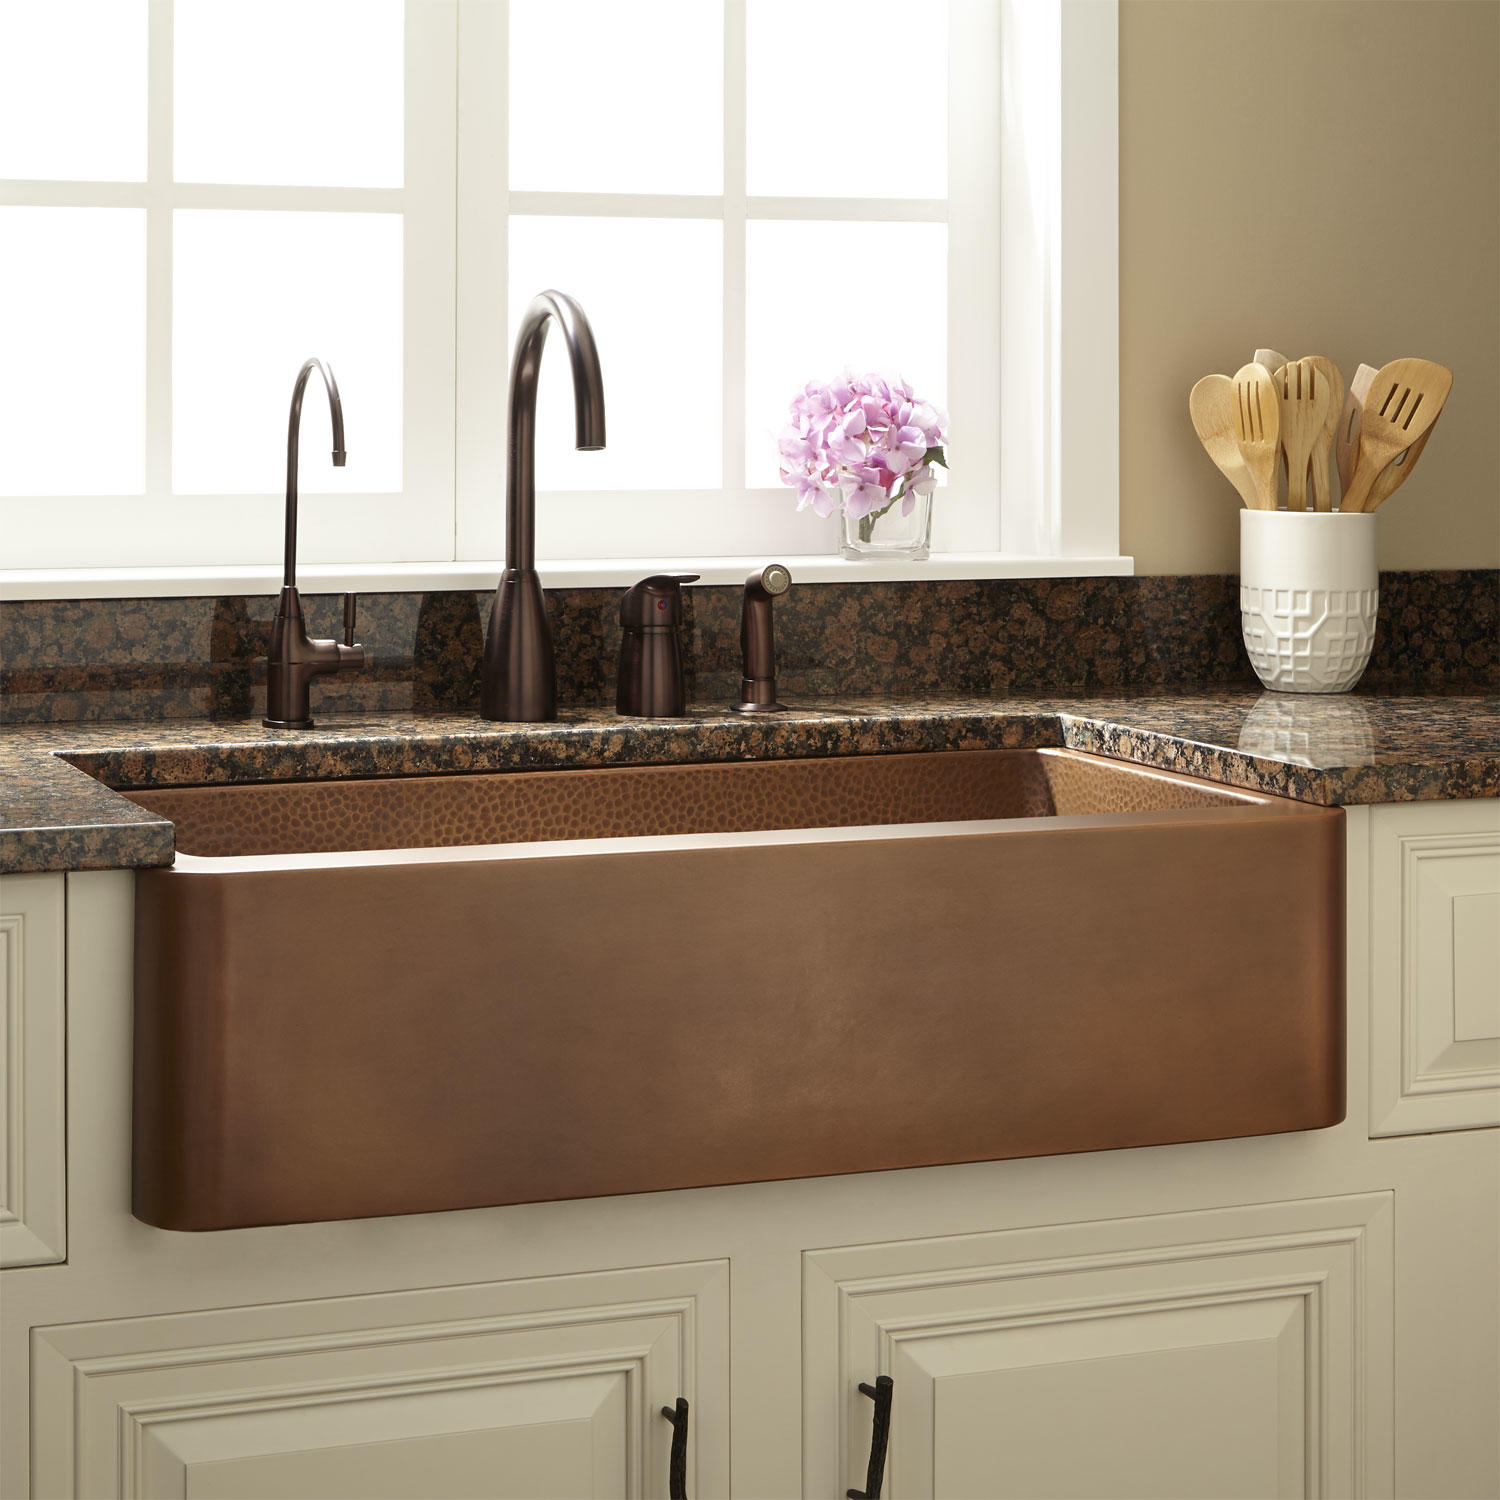 318879-l-raina-copper-farmhouse-sink-single-bowl-antique-copper